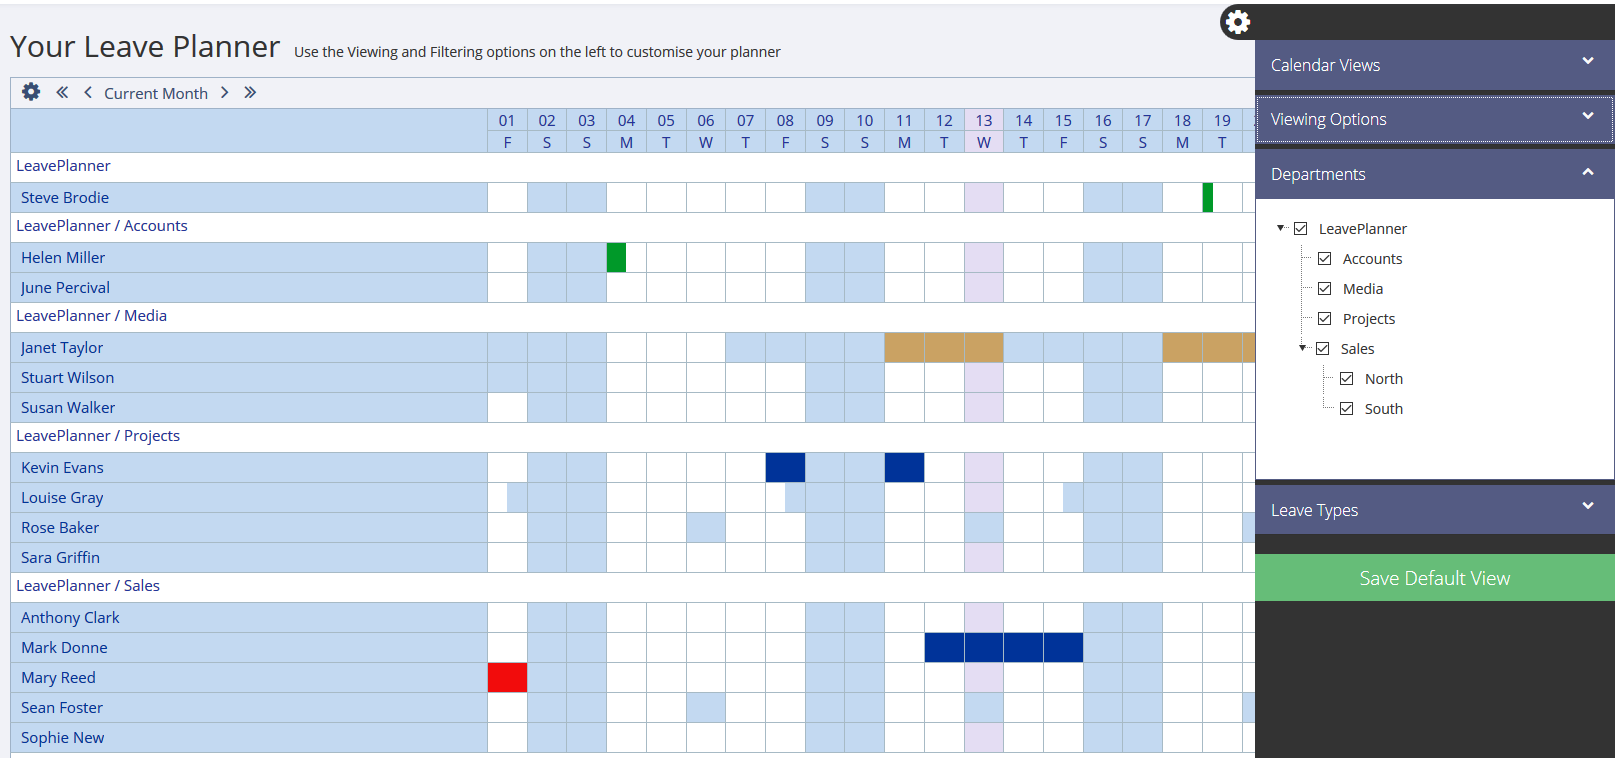 Department selector on the LeavePlanner Calendar in Grid View